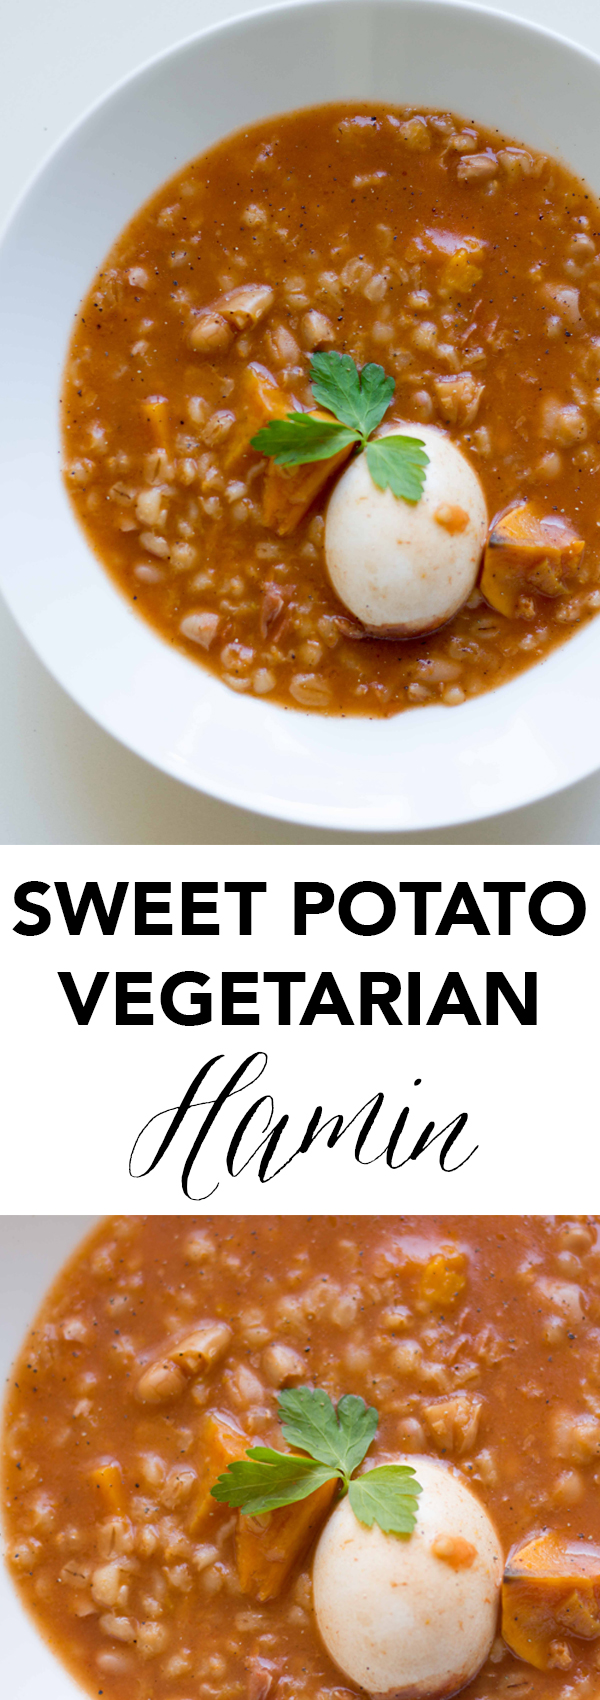 This vegetarian slow cooker version of Hamin, the traditional Jewish stew, is made with hearty sweet potatoes, barley, white beans and tomato sauce. It's the perfect winter comfort food! www.seriousspice.com